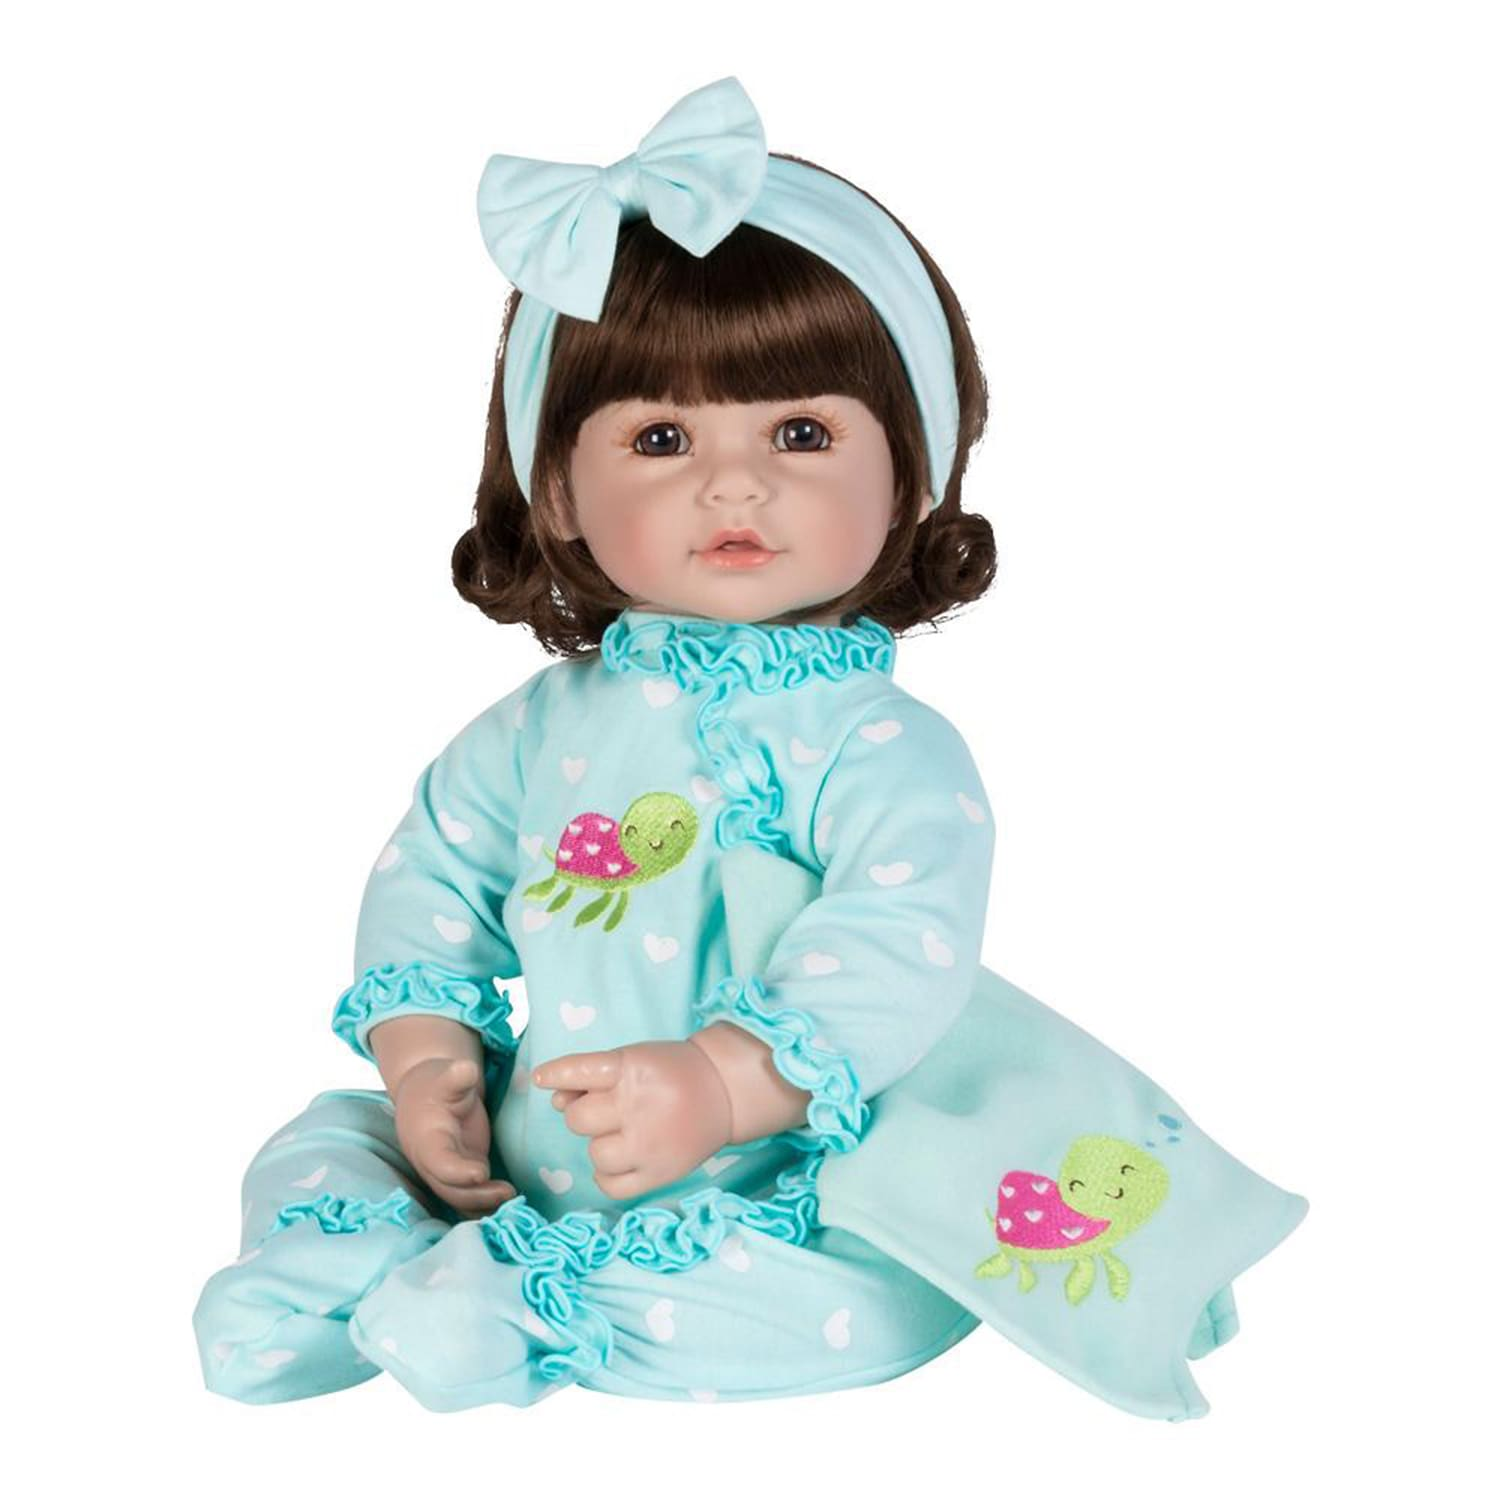 Adora ToddlerTime Doll Sleepy Turtle Girl Mary Shortle